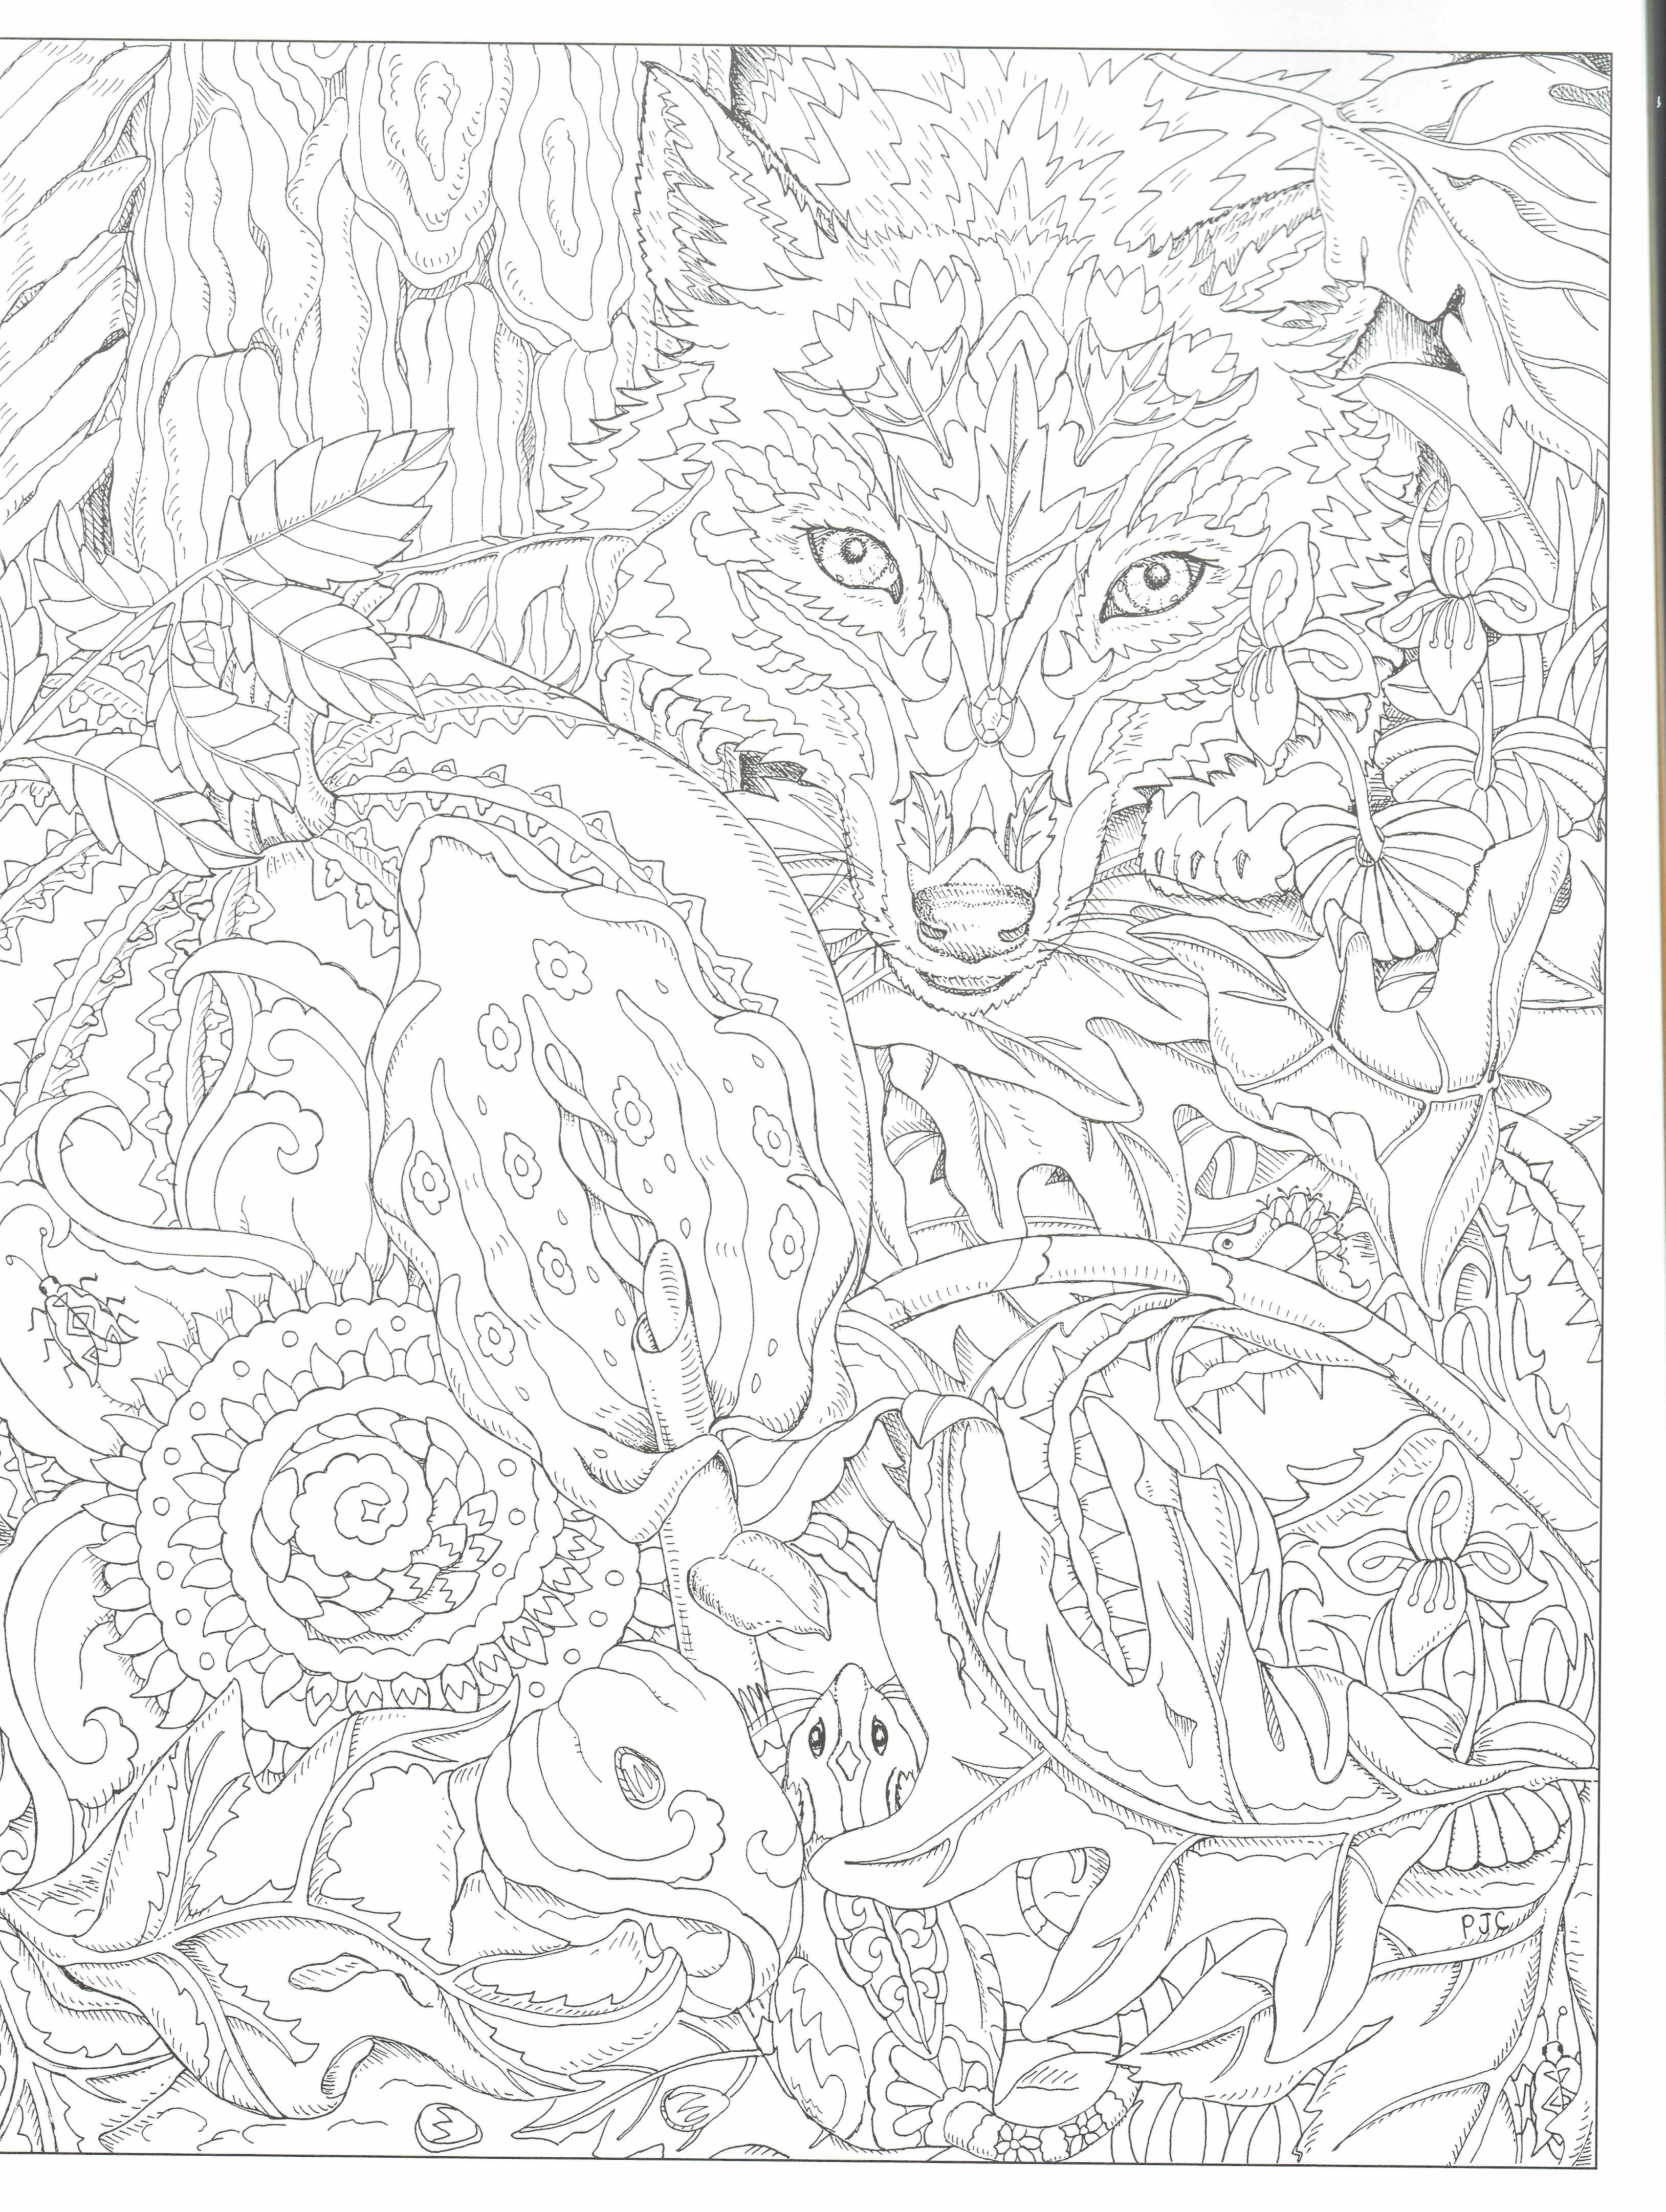 This Will Print On 11x17 Just As Nice As 8 5x11 Angel Coloring Pages Horse Coloring Pages Dover Coloring Pages